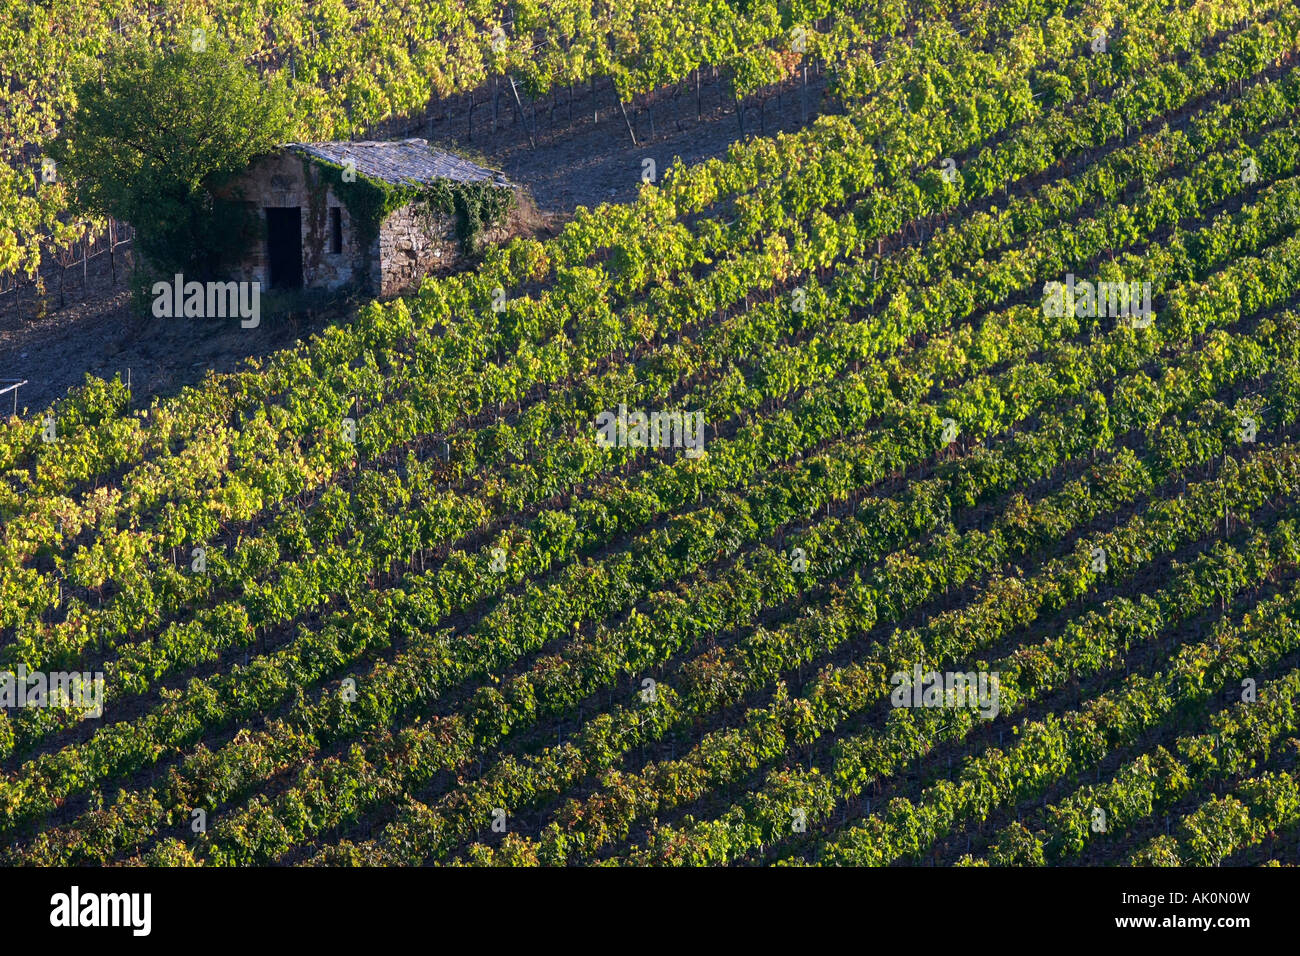 Rows of commercial wine grape vines growing field near Sienna famous brunello wine region Montalcino Tuscany Italyfamous - Stock Image